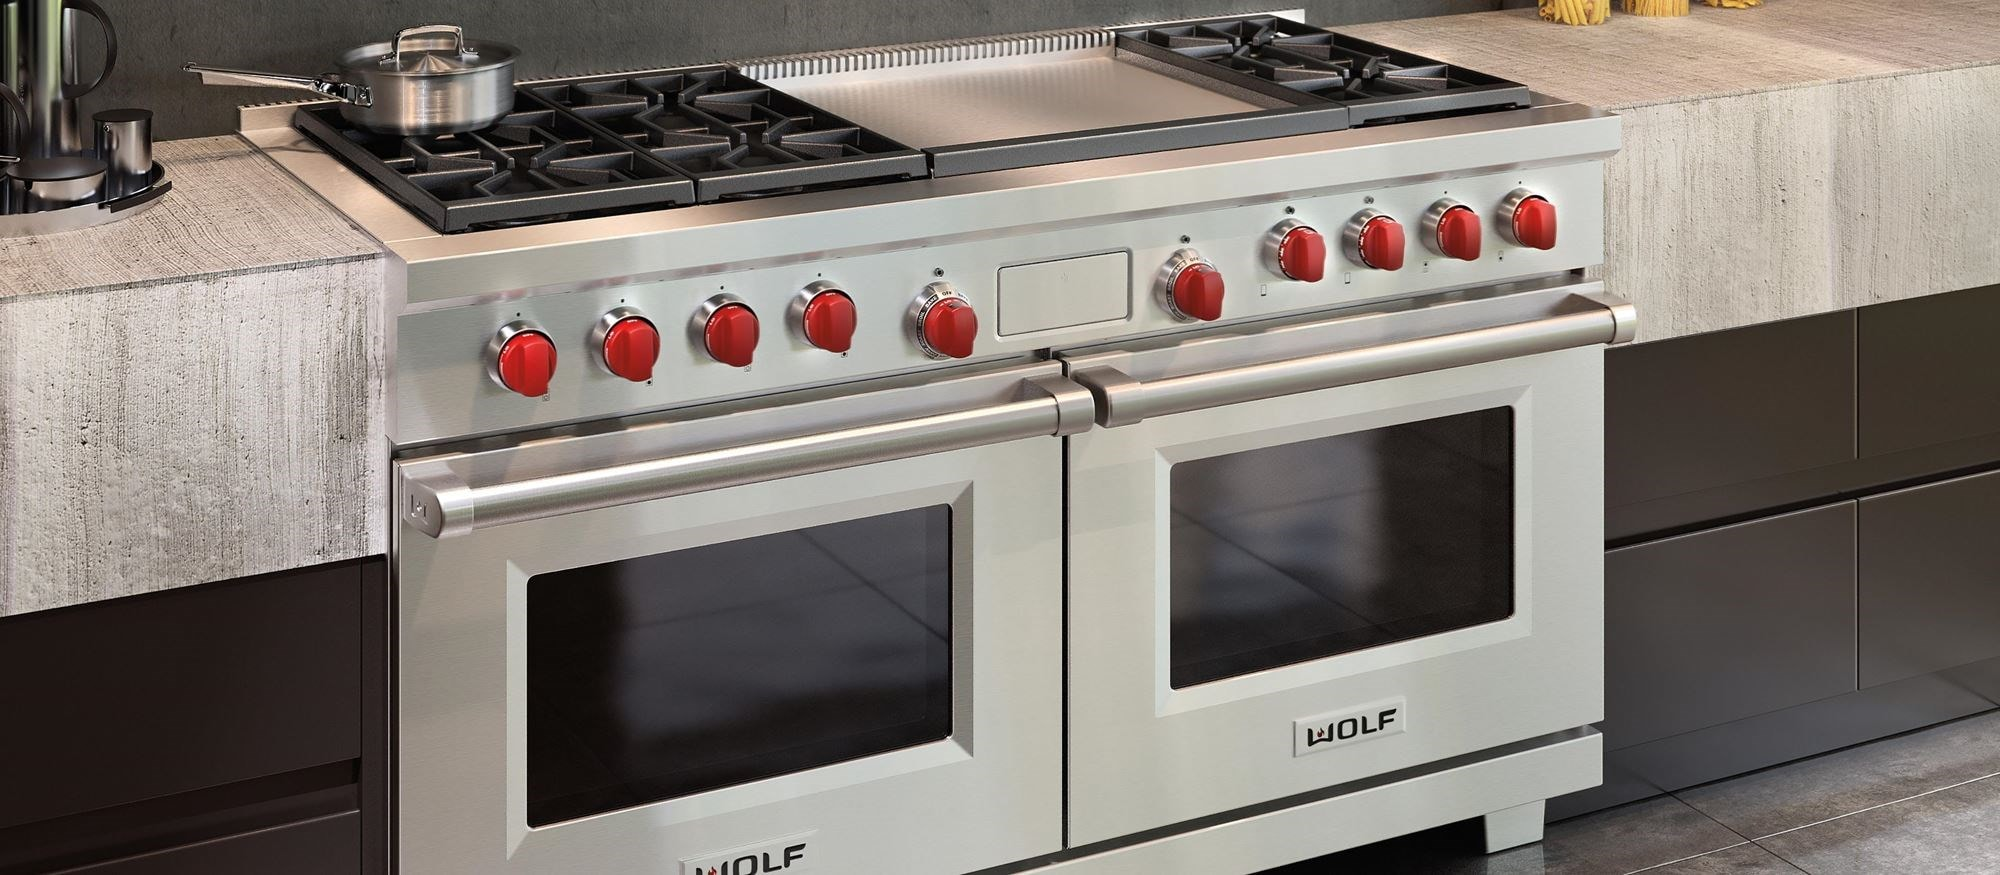 60 Dual Fuel Range 6 Burners And Infrared Griddle